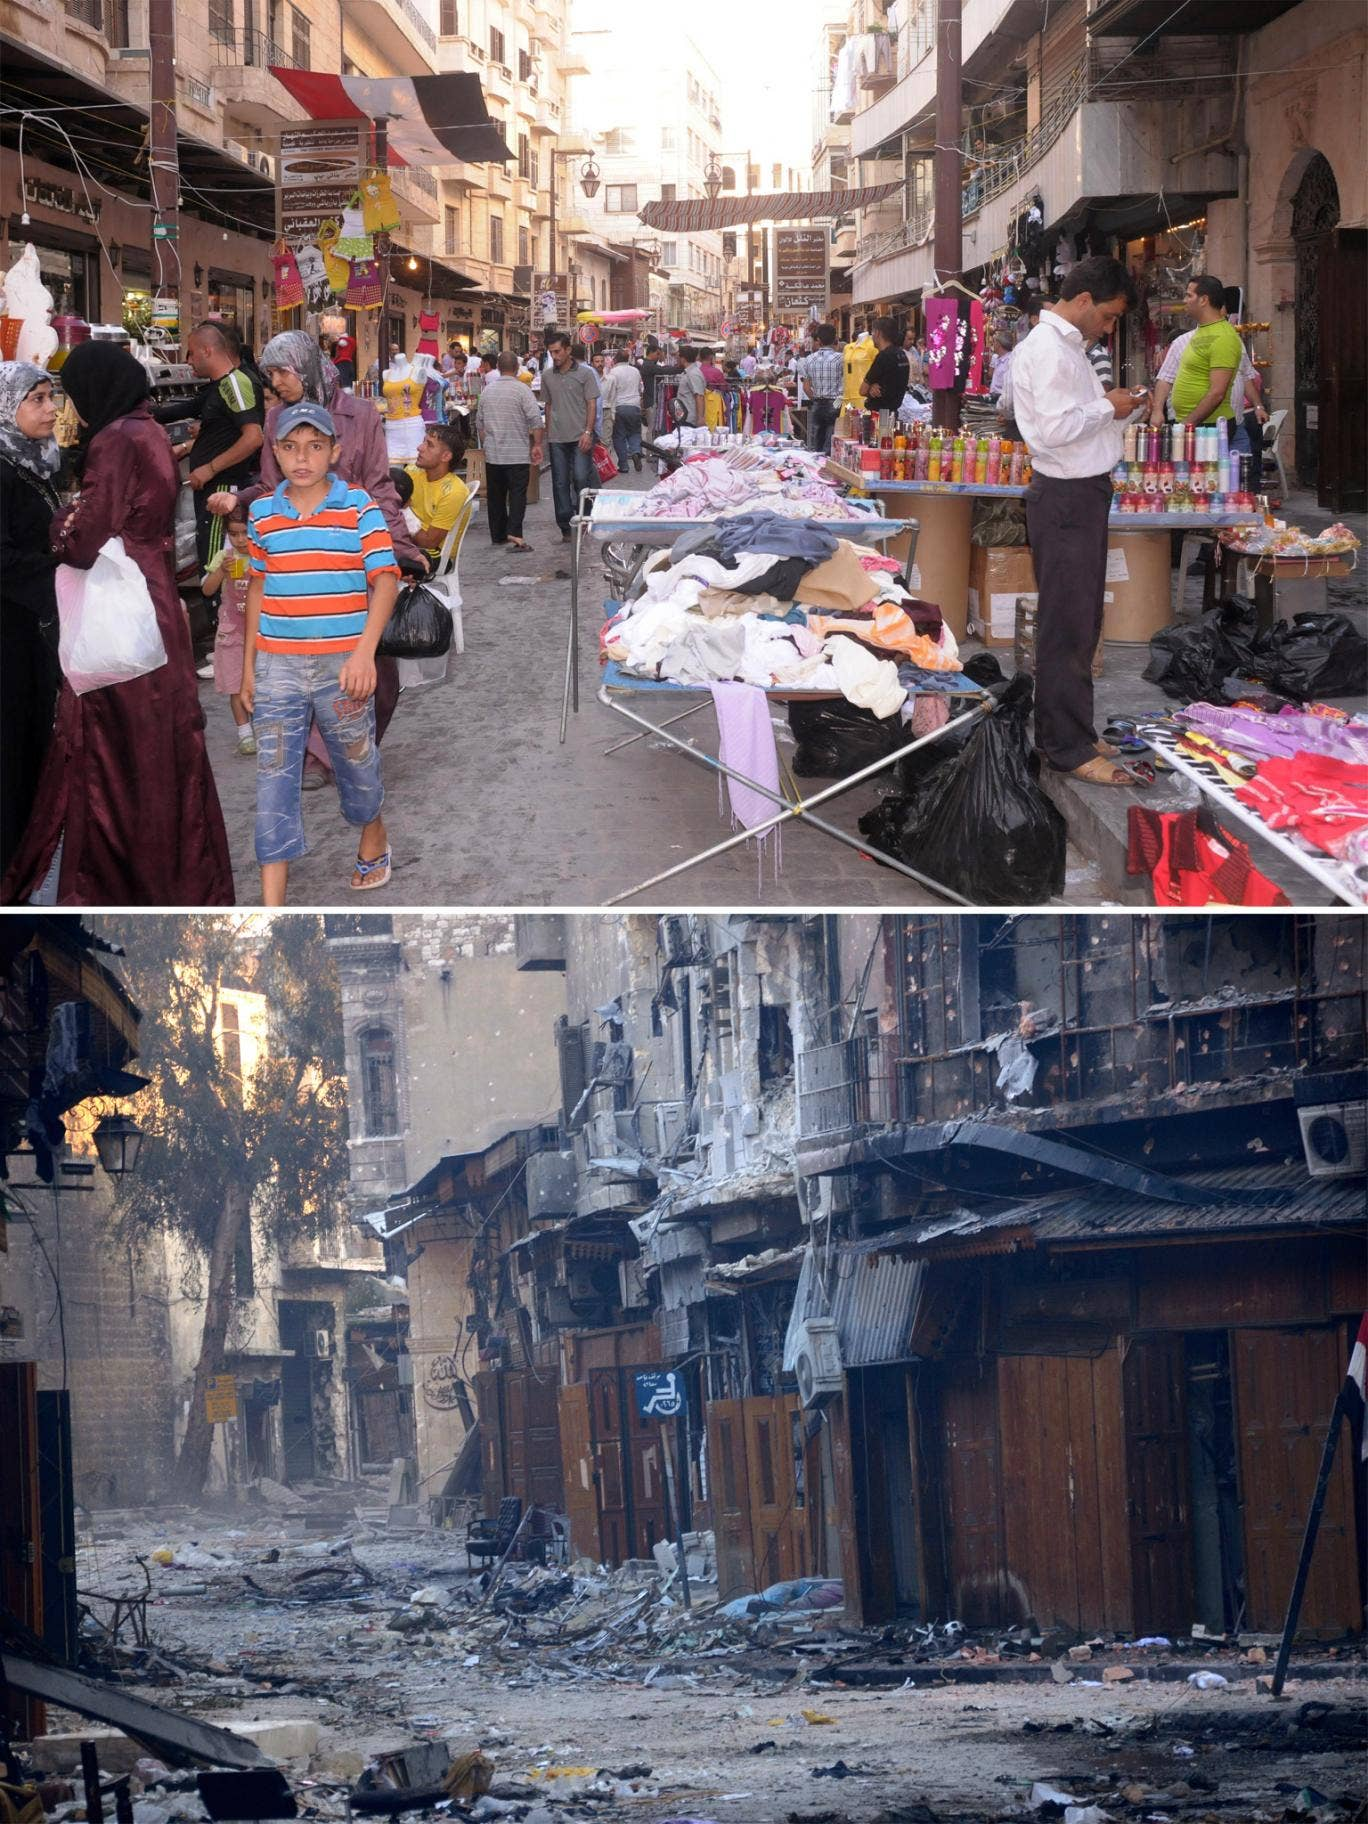 2011 - shops and stalls in the medieval souk area of Aleppo; 2013 - the old souk is now a scene of devastation